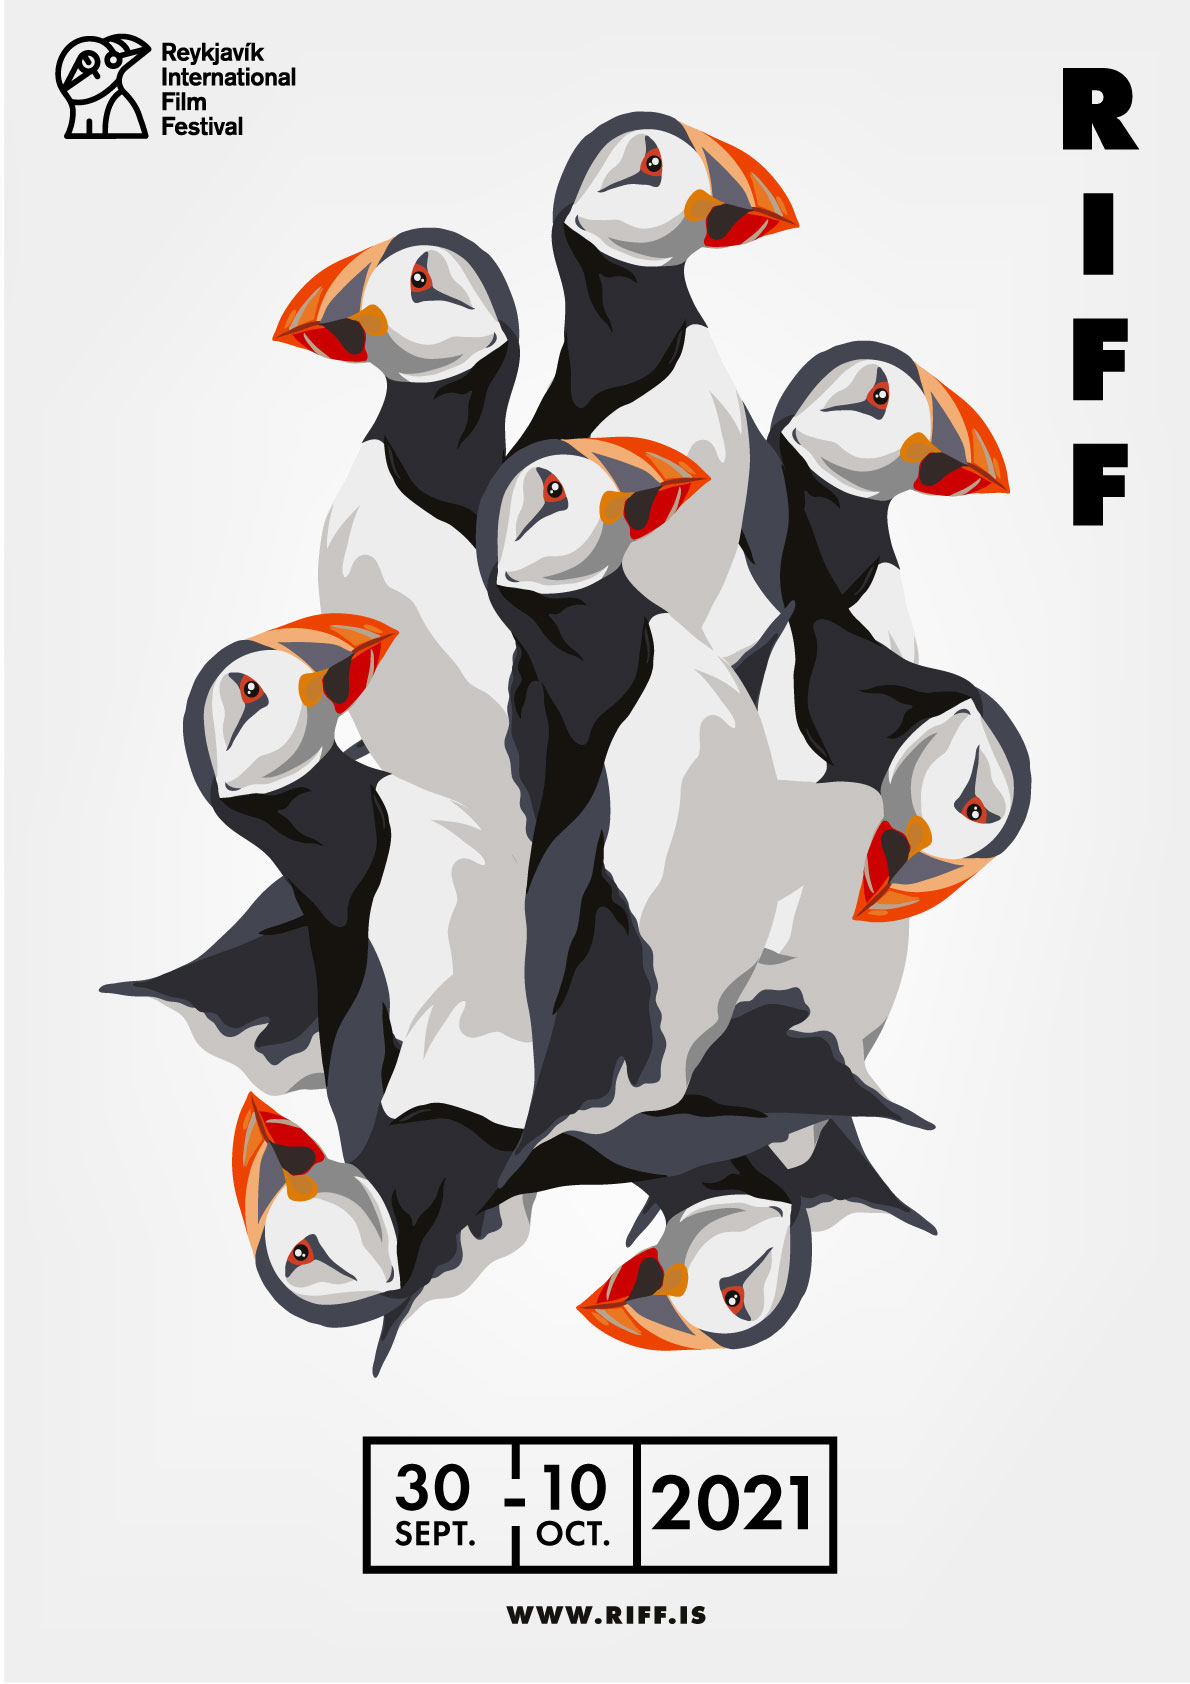 Riff International Film Festival poster for 2021 featuring a group of puffins facing all different directions with copy that reads '30th Sep-10th Oct 2021'